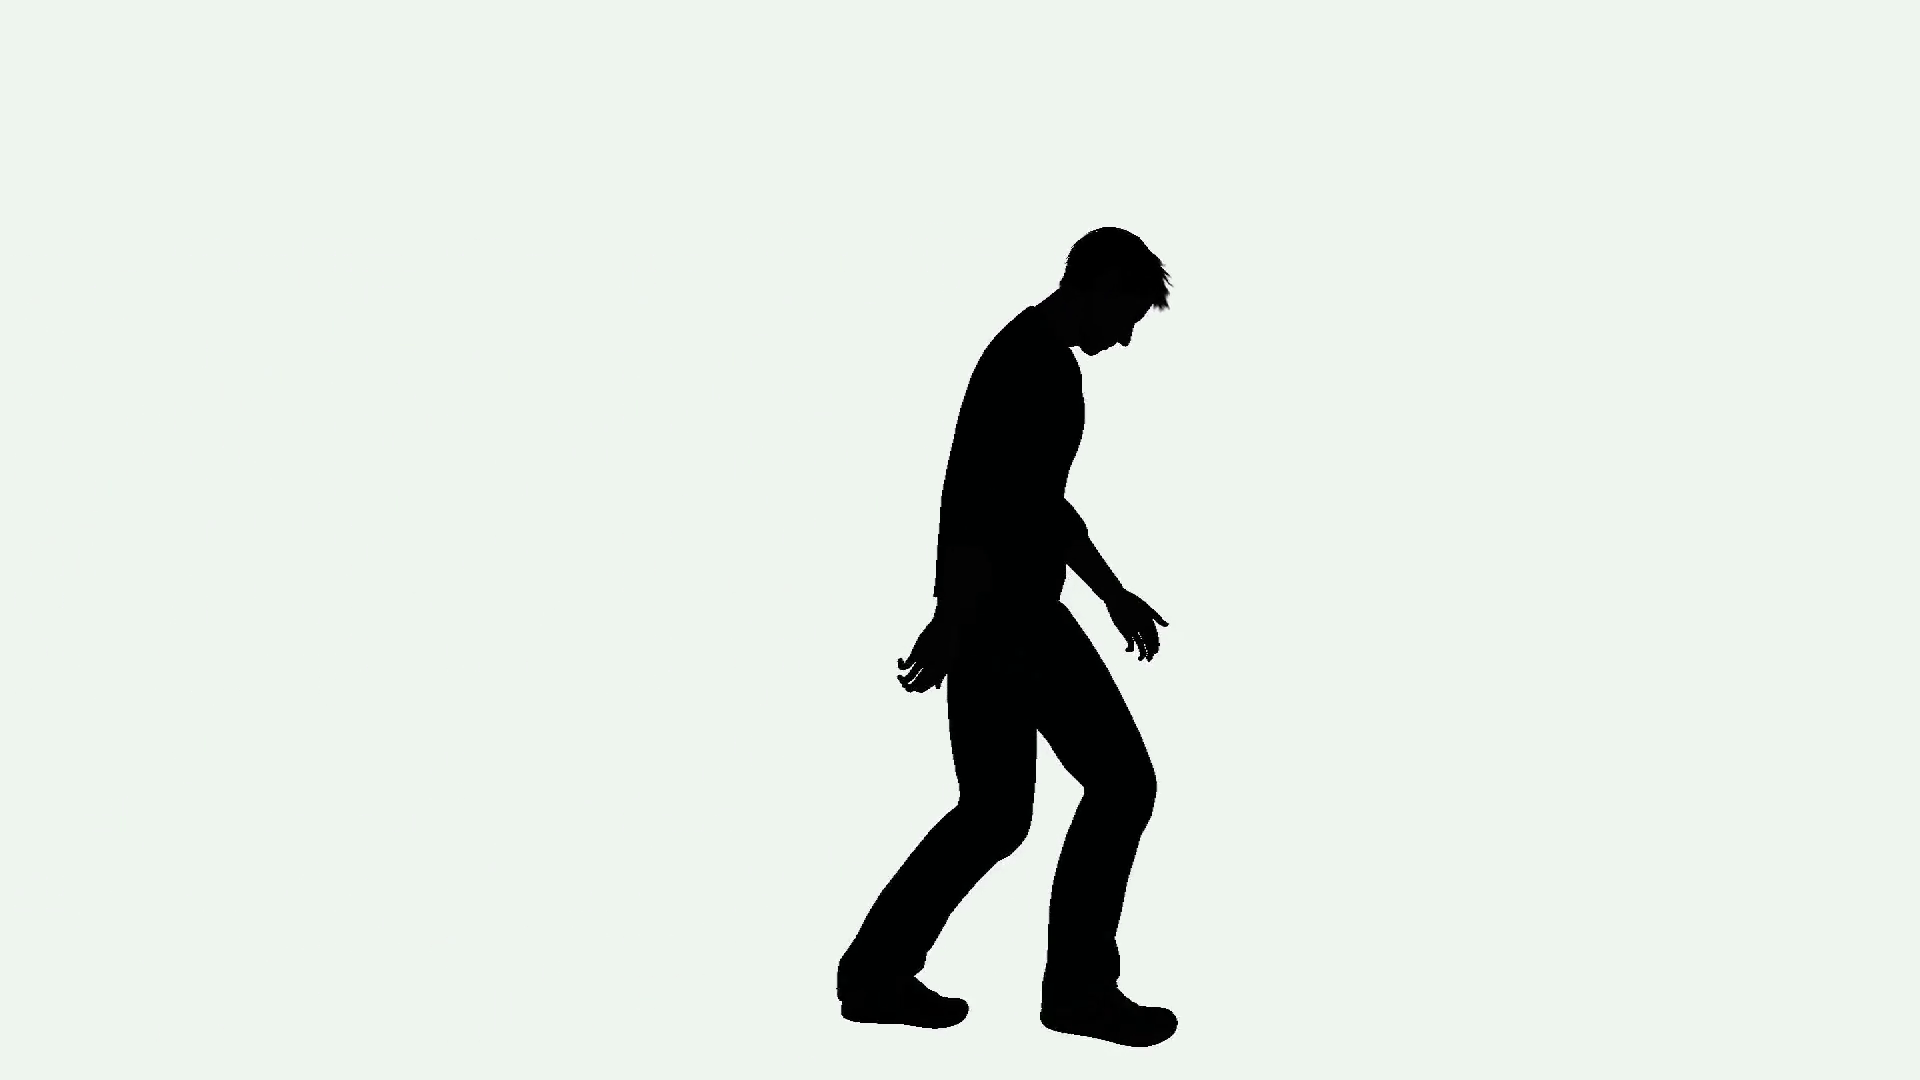 Person Walking Silhouette at GetDrawings.com   Free for ...   1920 x 1080 png 79kB